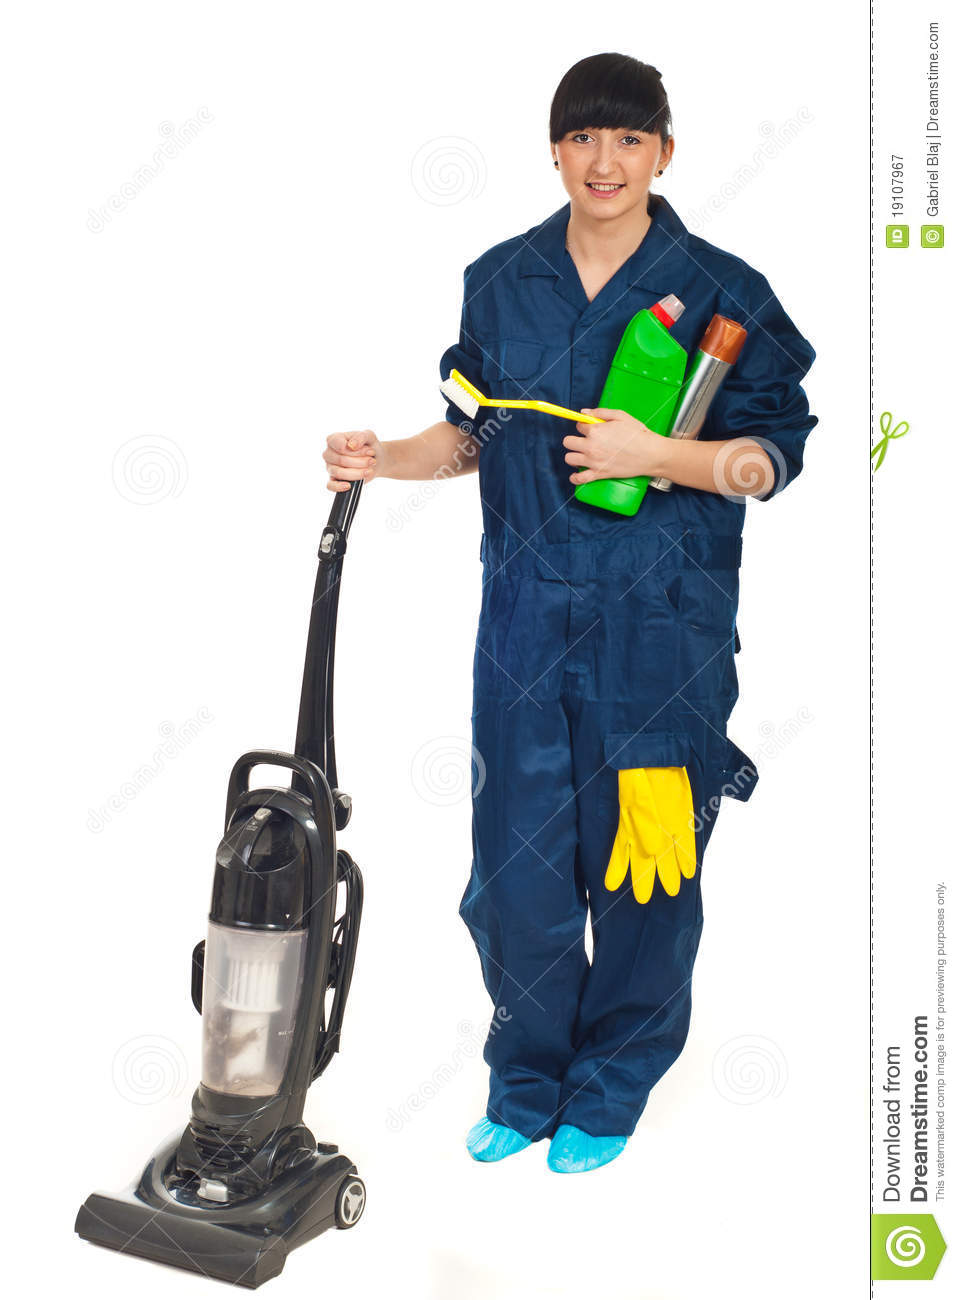 Cleaning Service Cleaning Agents And Tools Illustrations